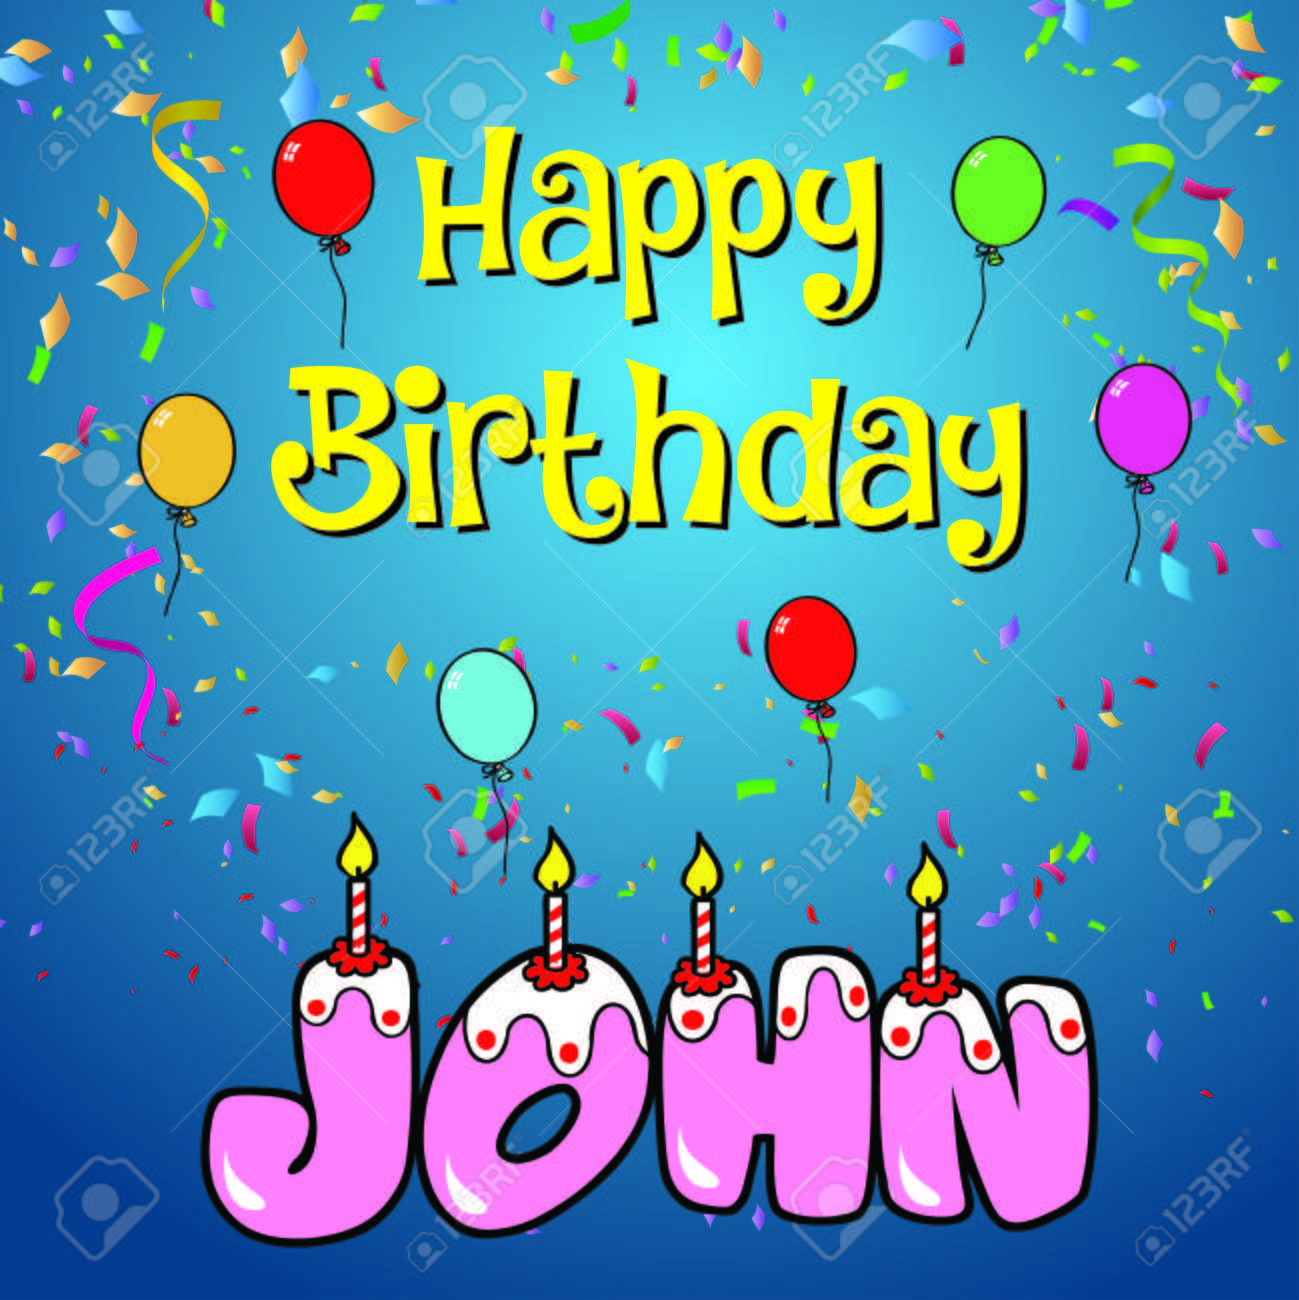 Image result for happy birthday John